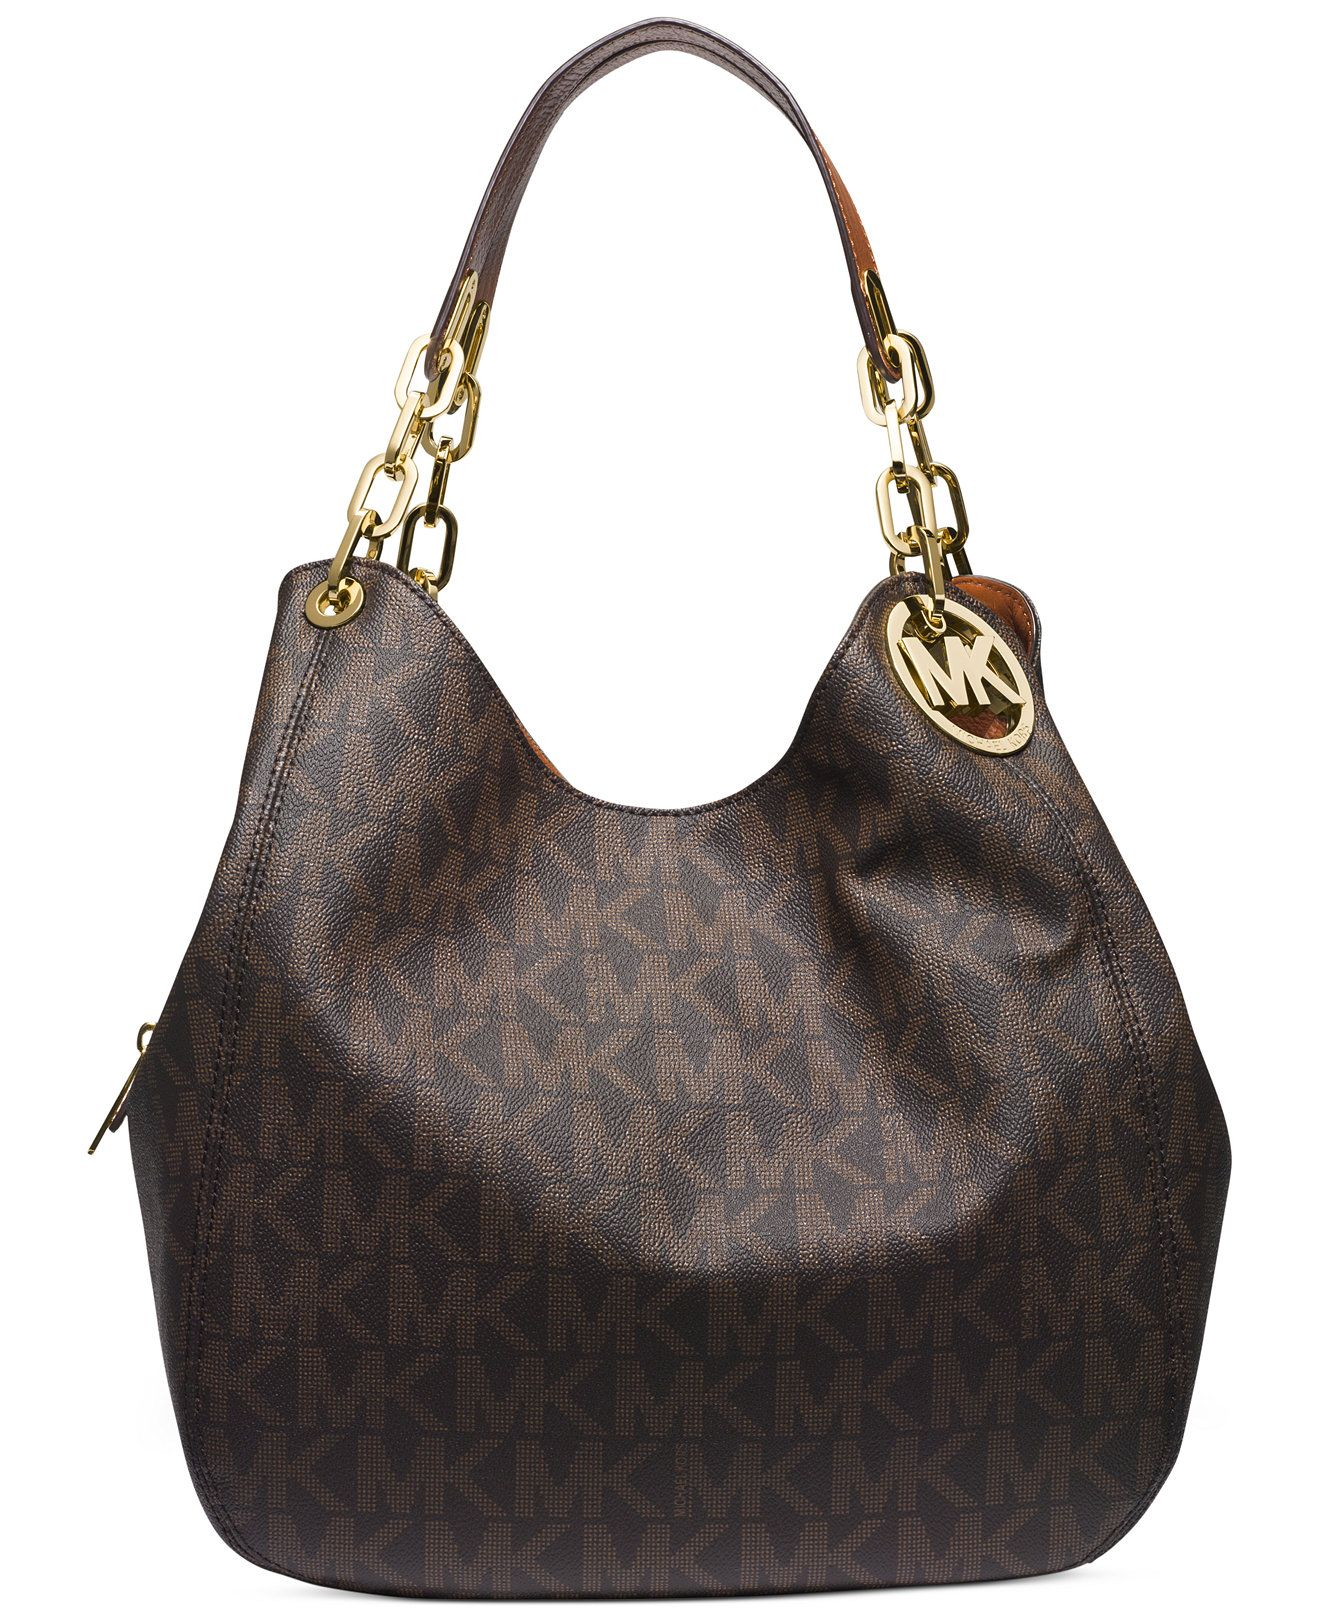 1b74db30558e MICHAEL Michael Kors Fulton Large Shoulder Tote - Michael Kors Handbags -  Handbags & Accessories - Macy's